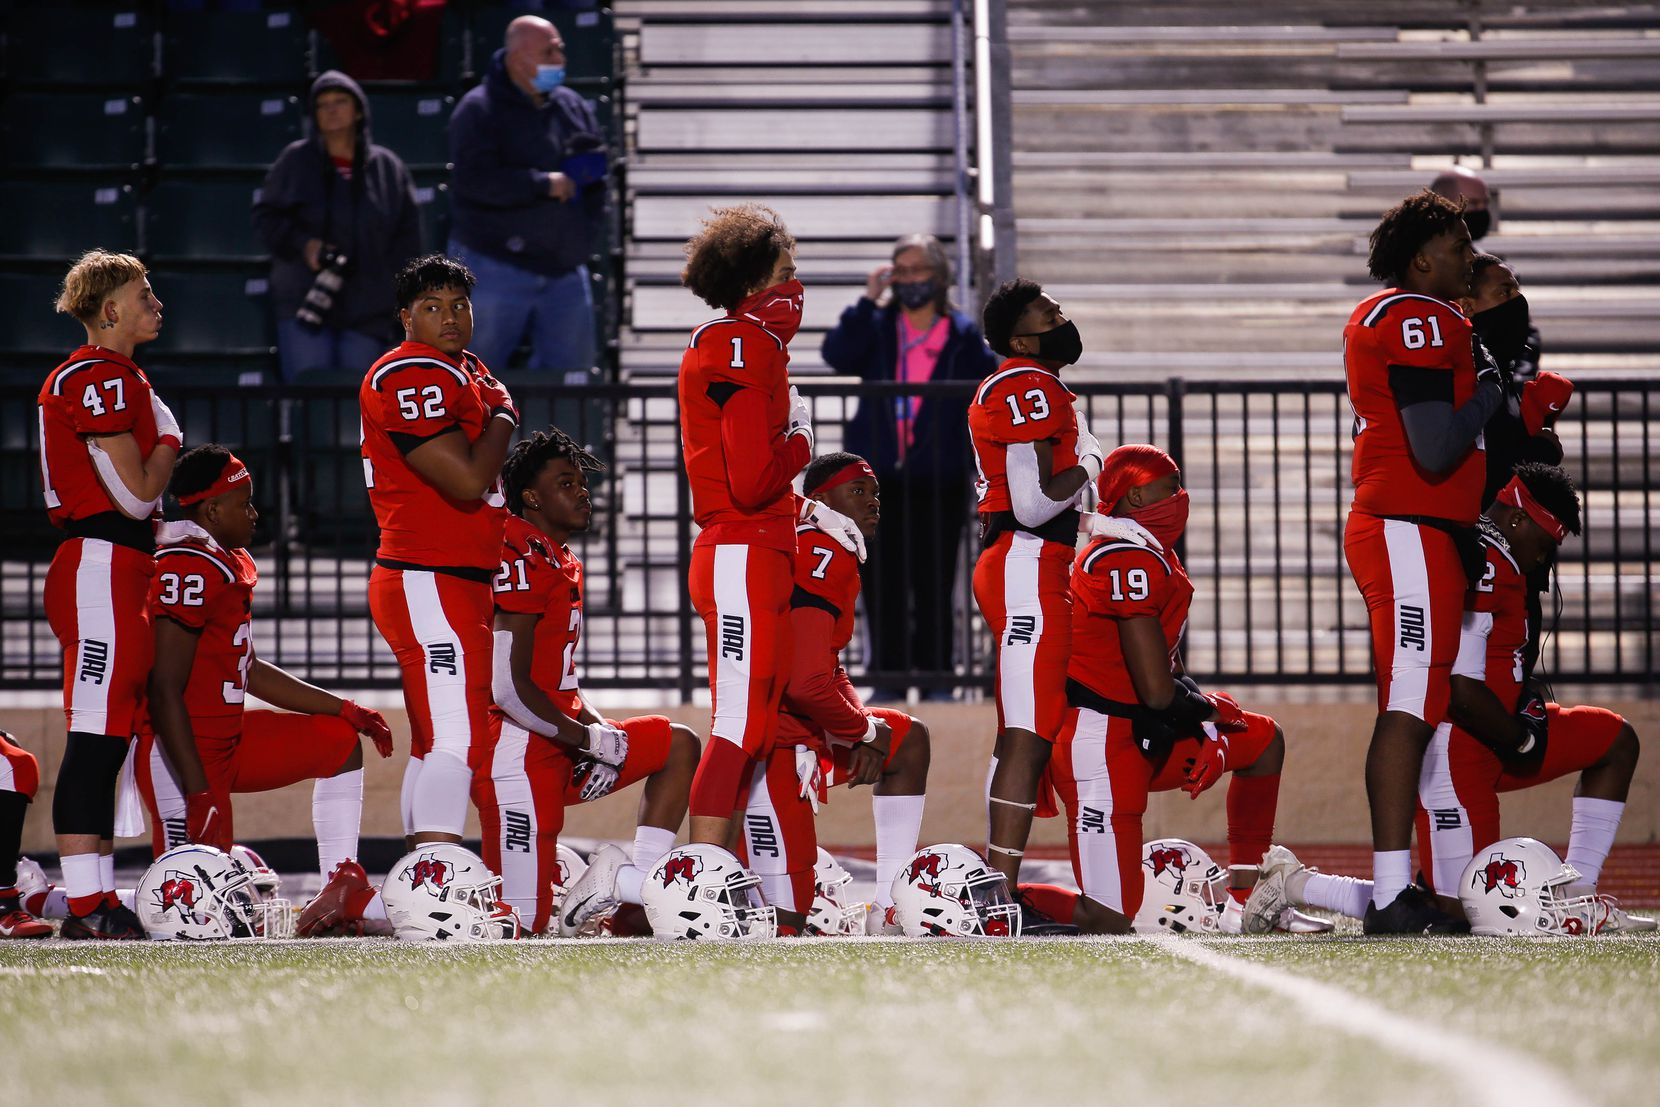 Irving MacArthur High School players kneel and stand during the national anthem before a football game against Lake Highlands at Joy & Ralph Ellis Stadium in Irving on Friday, Oct. 23, 2020. (Juan Figueroa/ The Dallas Morning News)